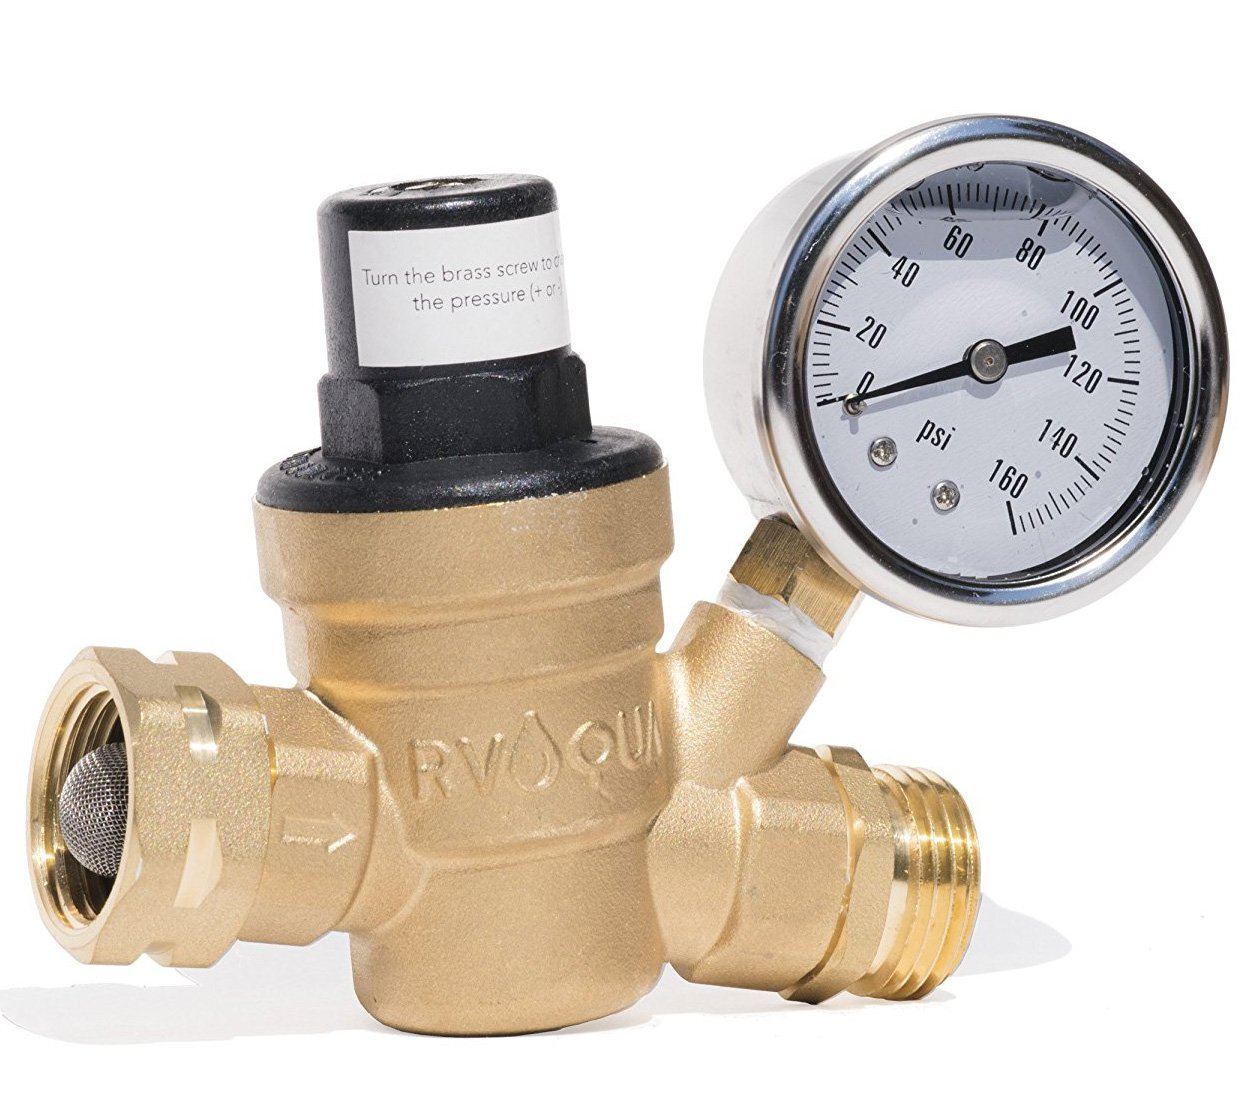 RVAQUA M11-45PSI Water Pressure Regulator for RV Camper - Brass Lead-Free Adjustable RV Water Pressure Reducer with 160 PSI Gauge and Inlet Stainless Screened Filter